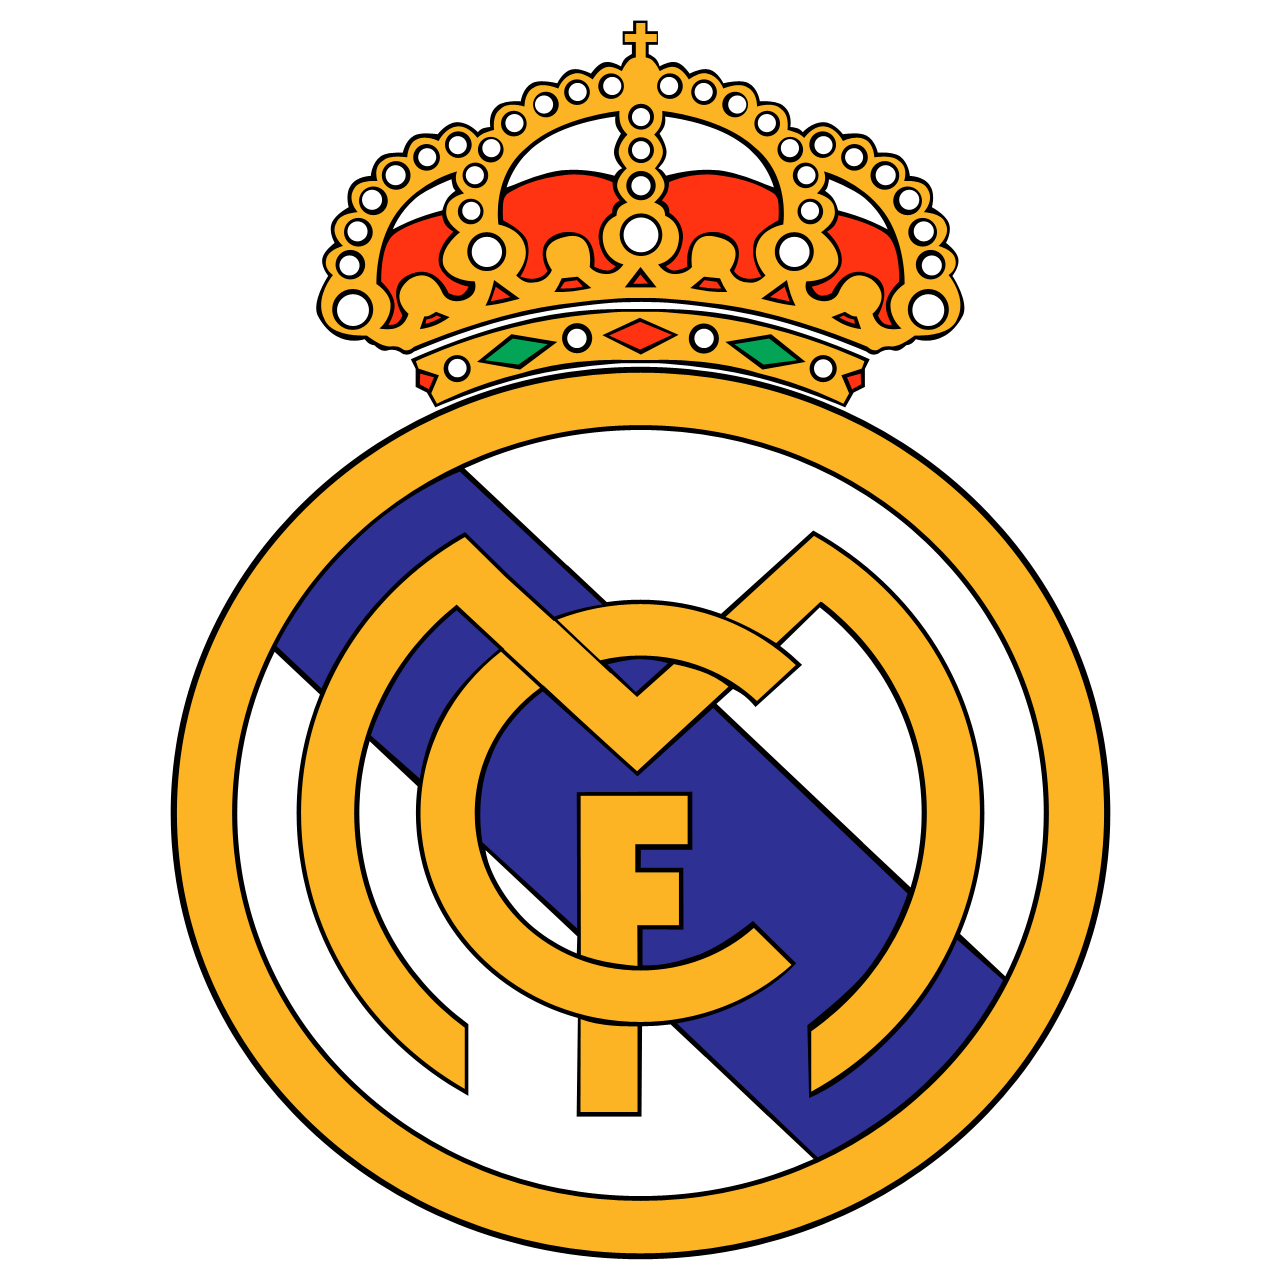 Clipart real madrid clip freeuse Clipart real madrid - ClipartFest clip freeuse